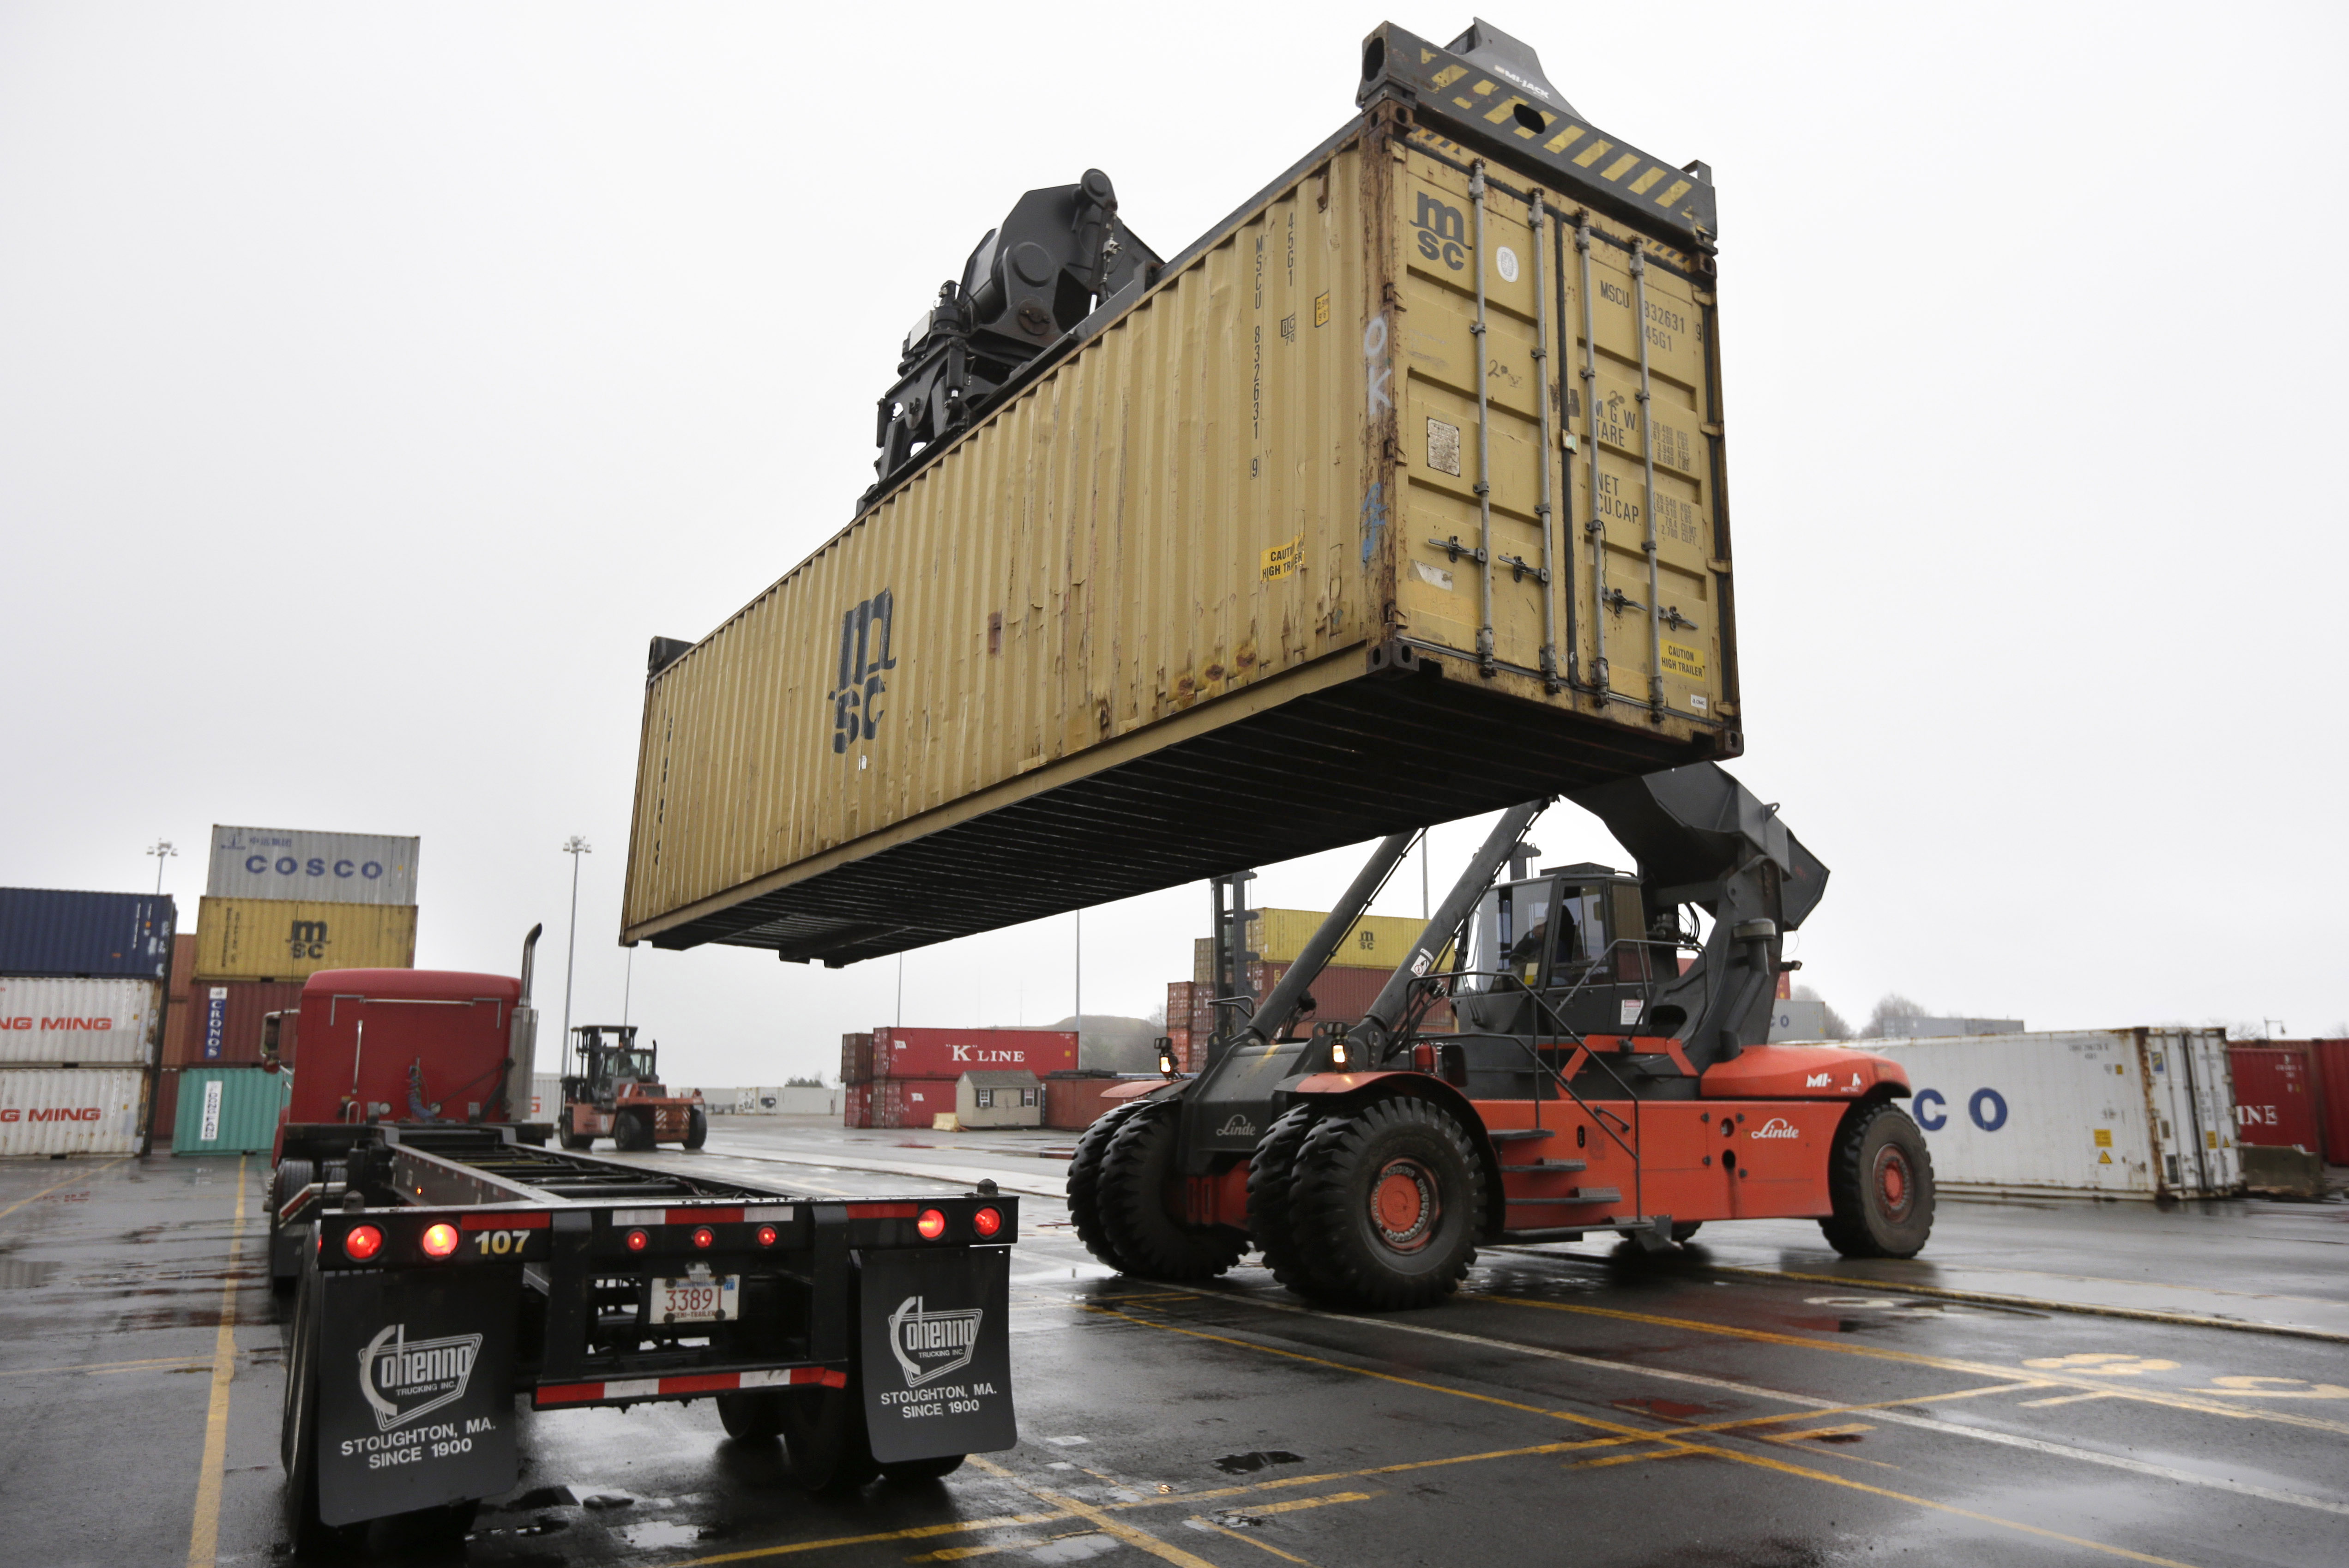 Shipping Container Trailer >> Deal reached to avert U.S. port strike for now - The Blade